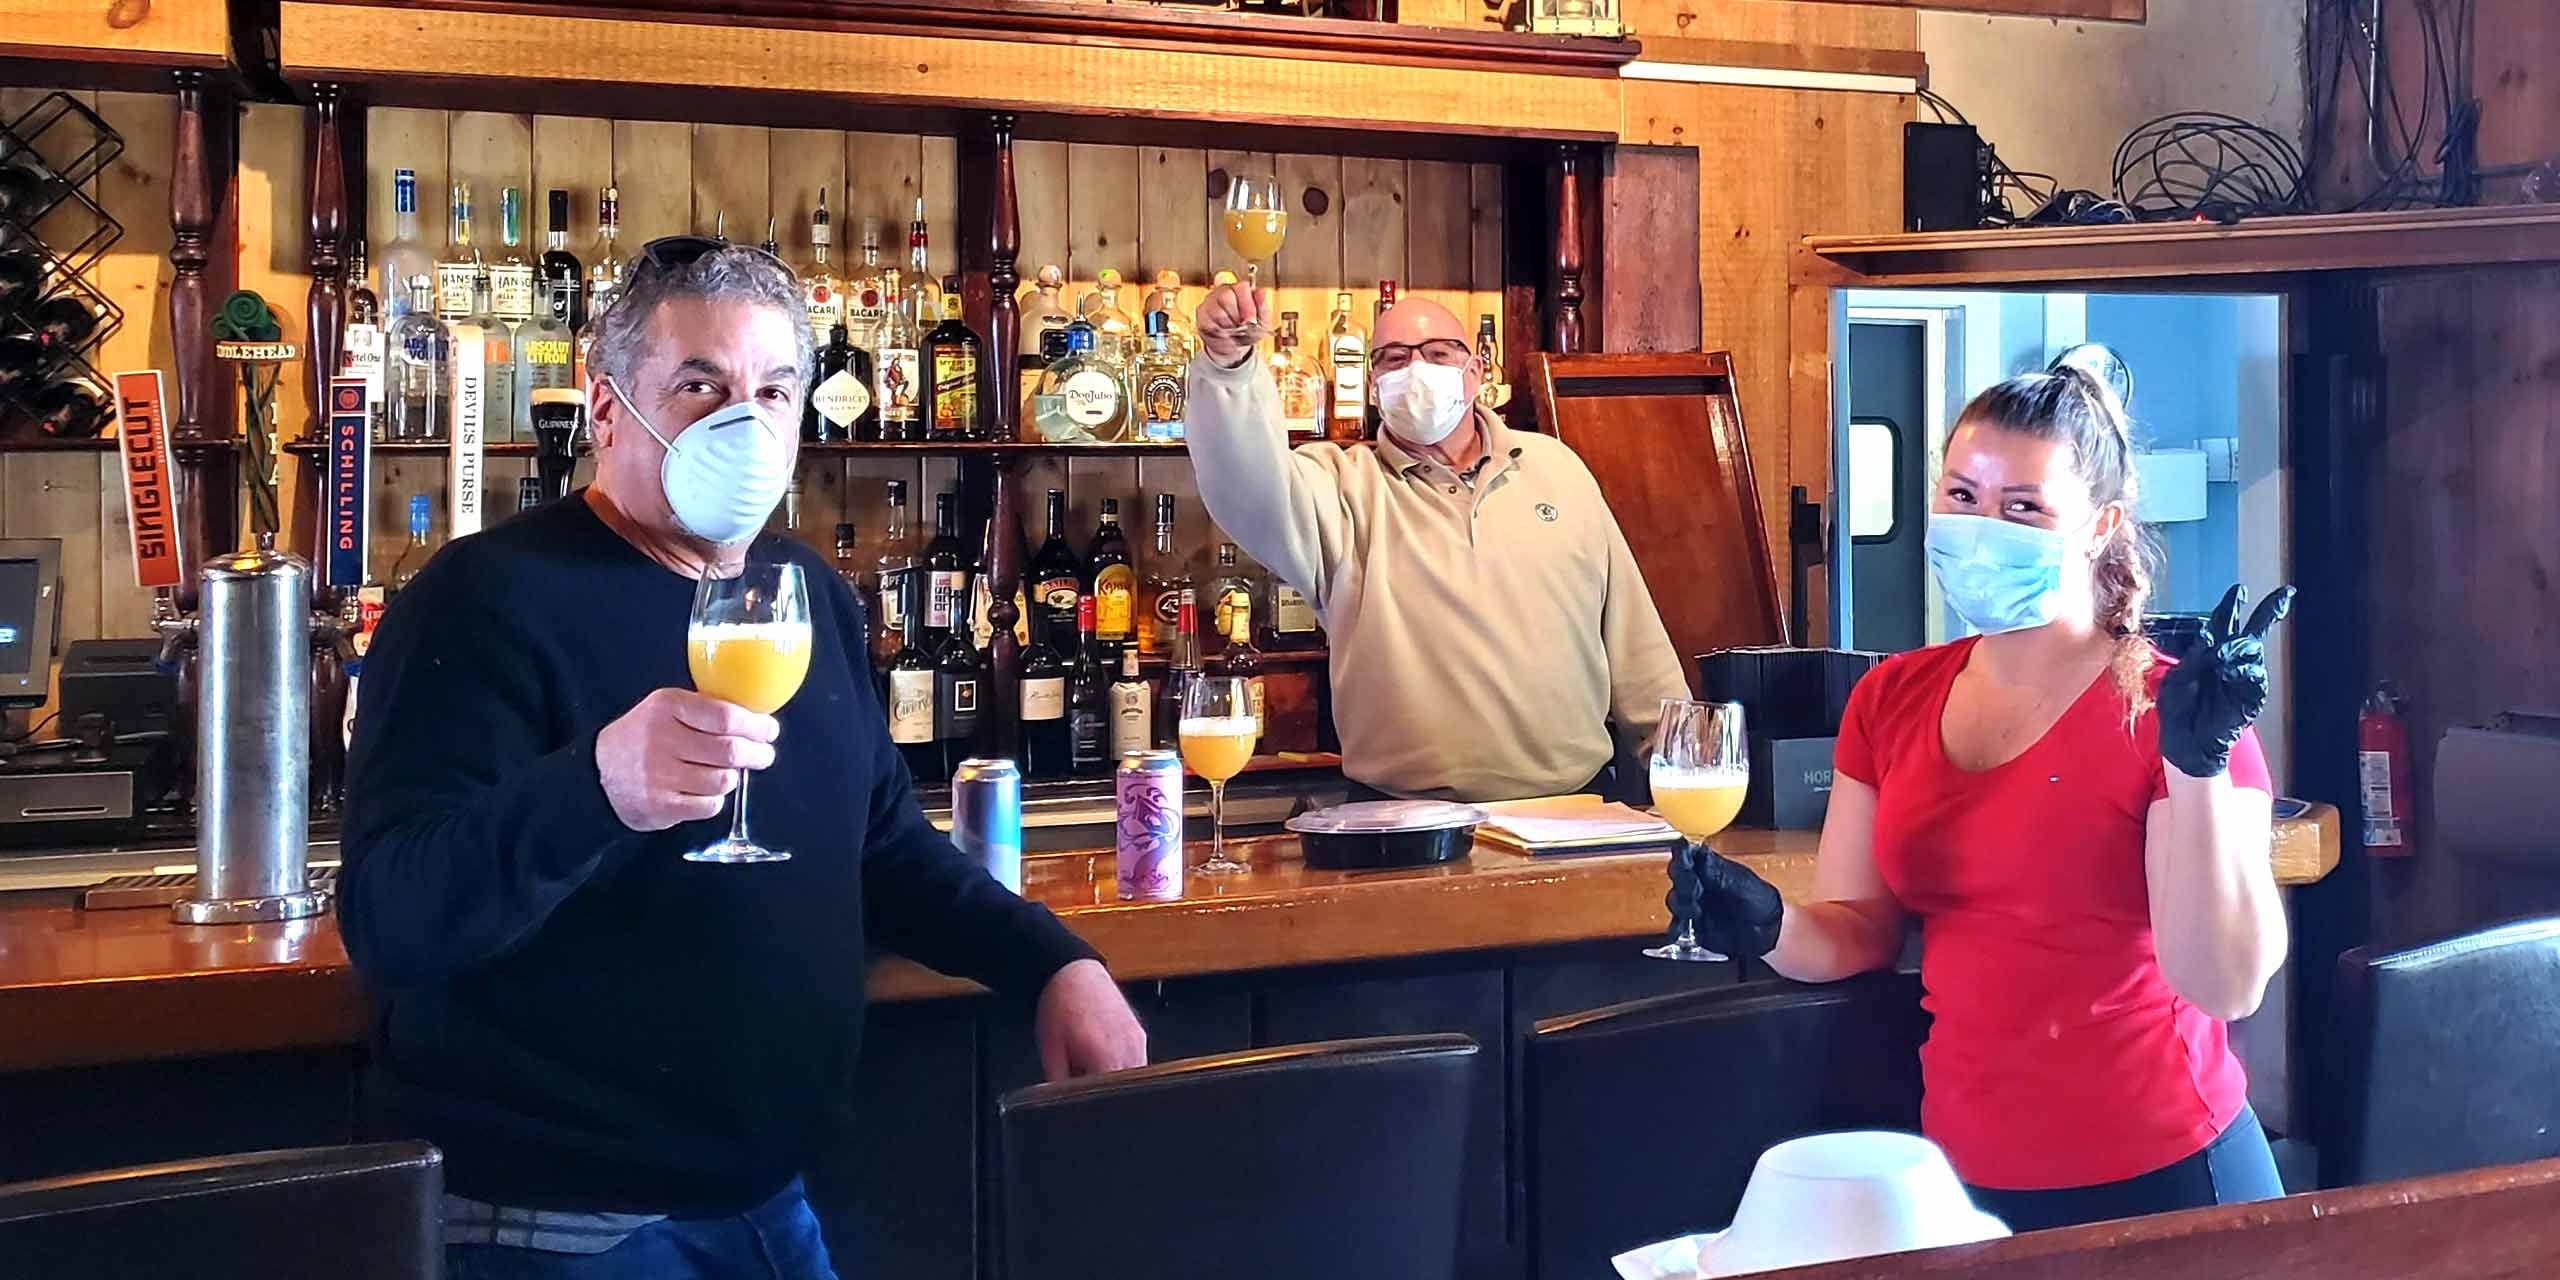 The owners and a server raise glasses of beer at the bar while wearing masks